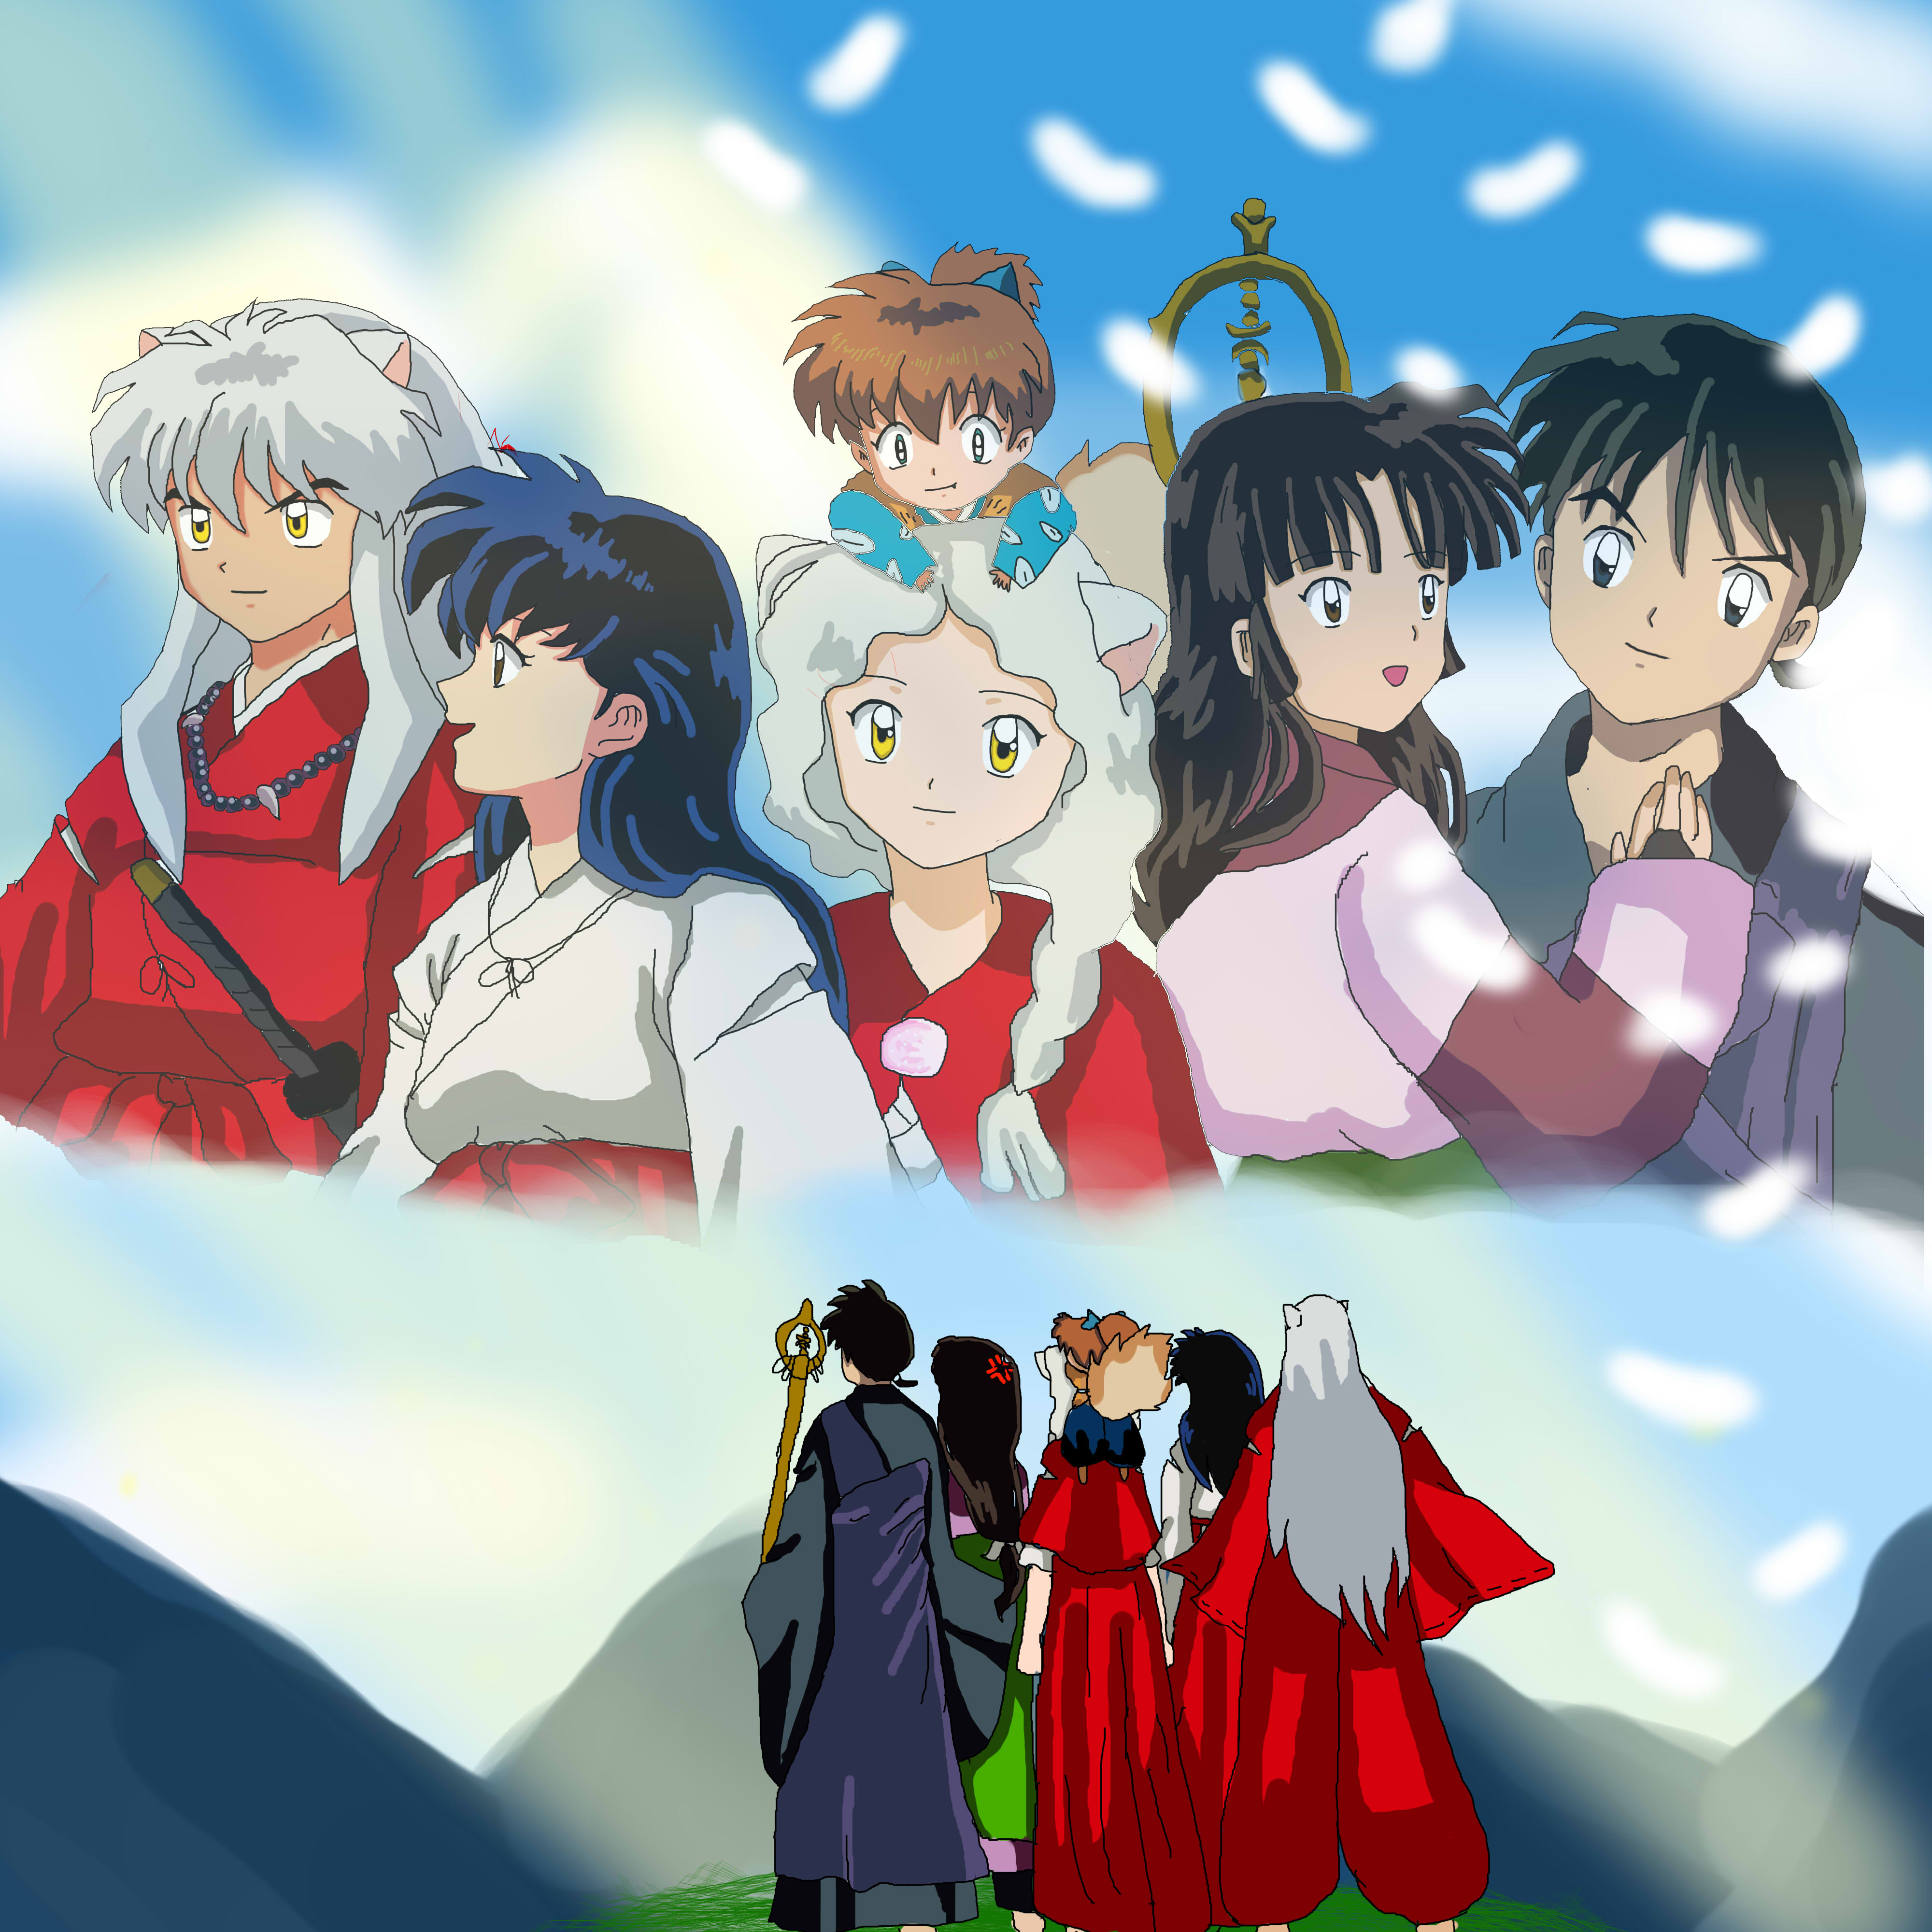 Inuyasha Movie Five! Poster 5 By Ayeletv On DeviantArt